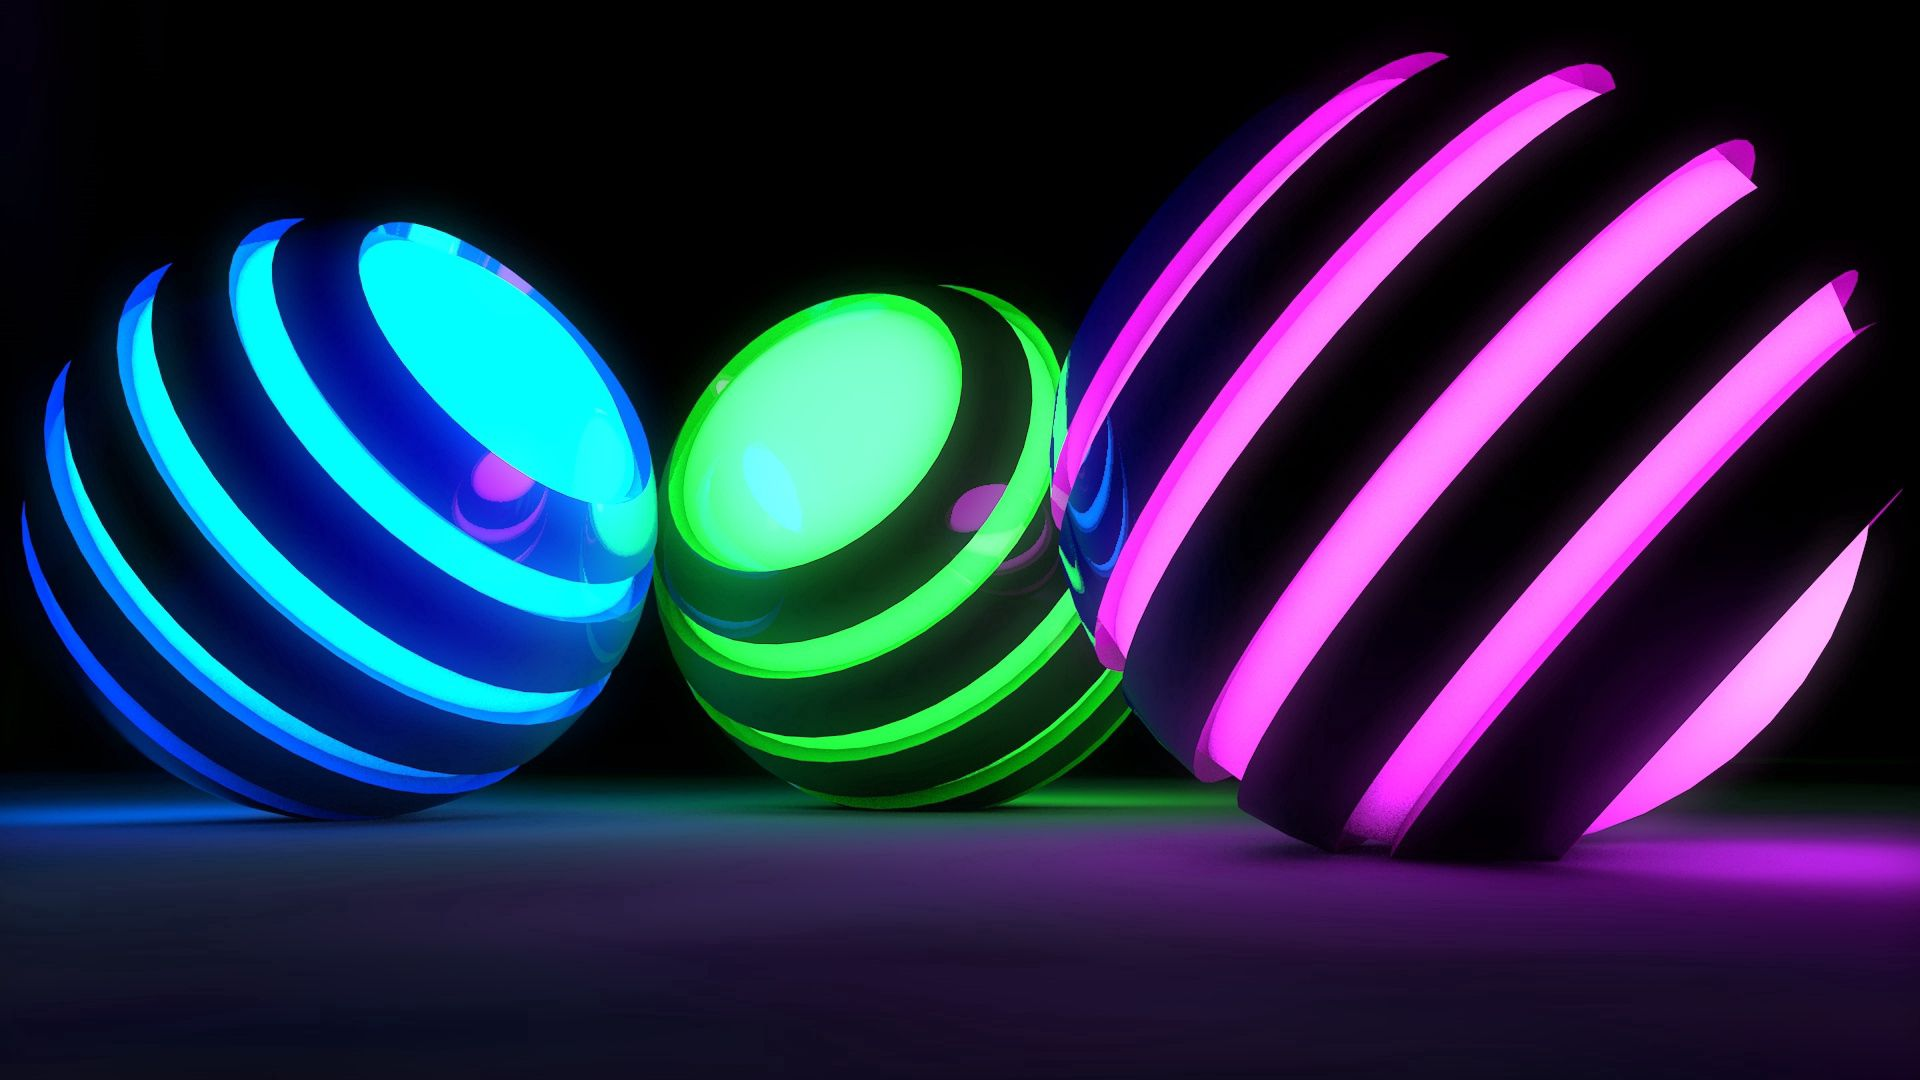 82148 Screensavers and Wallpapers Balls for phone. Download 3D, Balls, Bright, Stripes, Streaks, Glow pictures for free